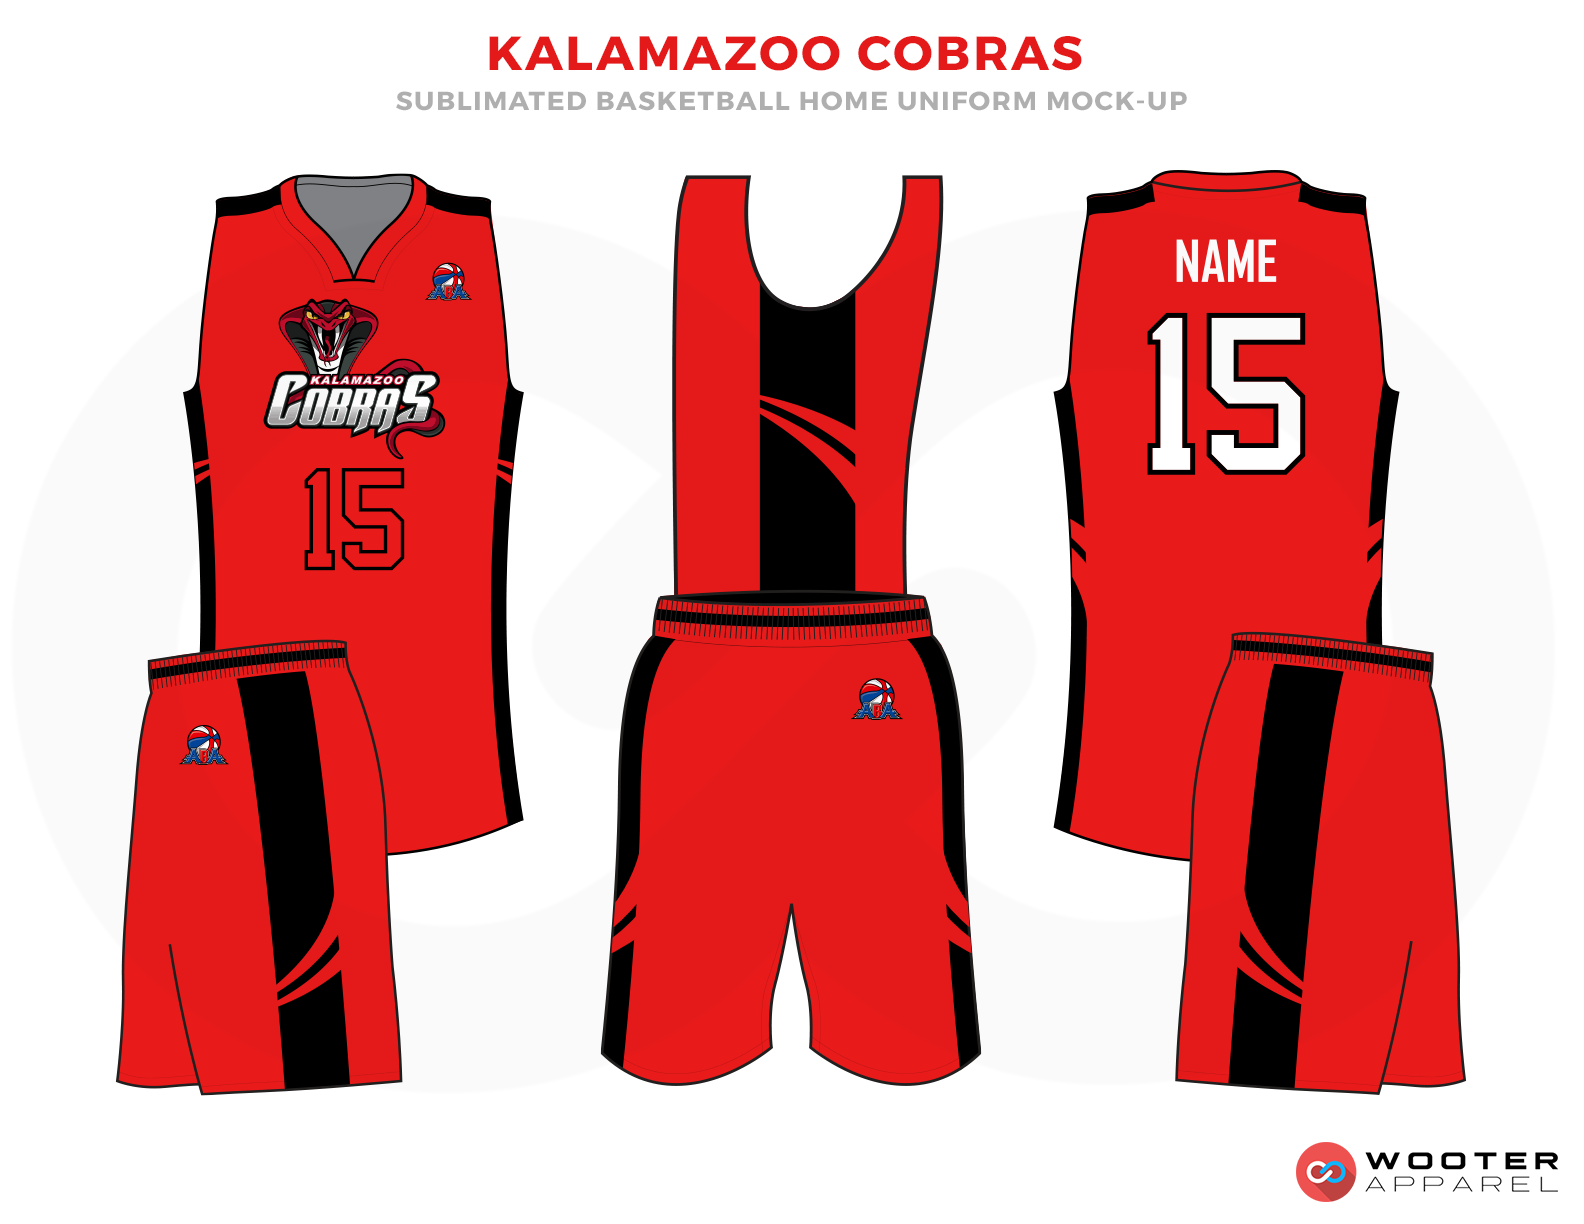 KALAMAZOO COBRAS Red Black and White Basketball Uniforms, Jersey and Shorts